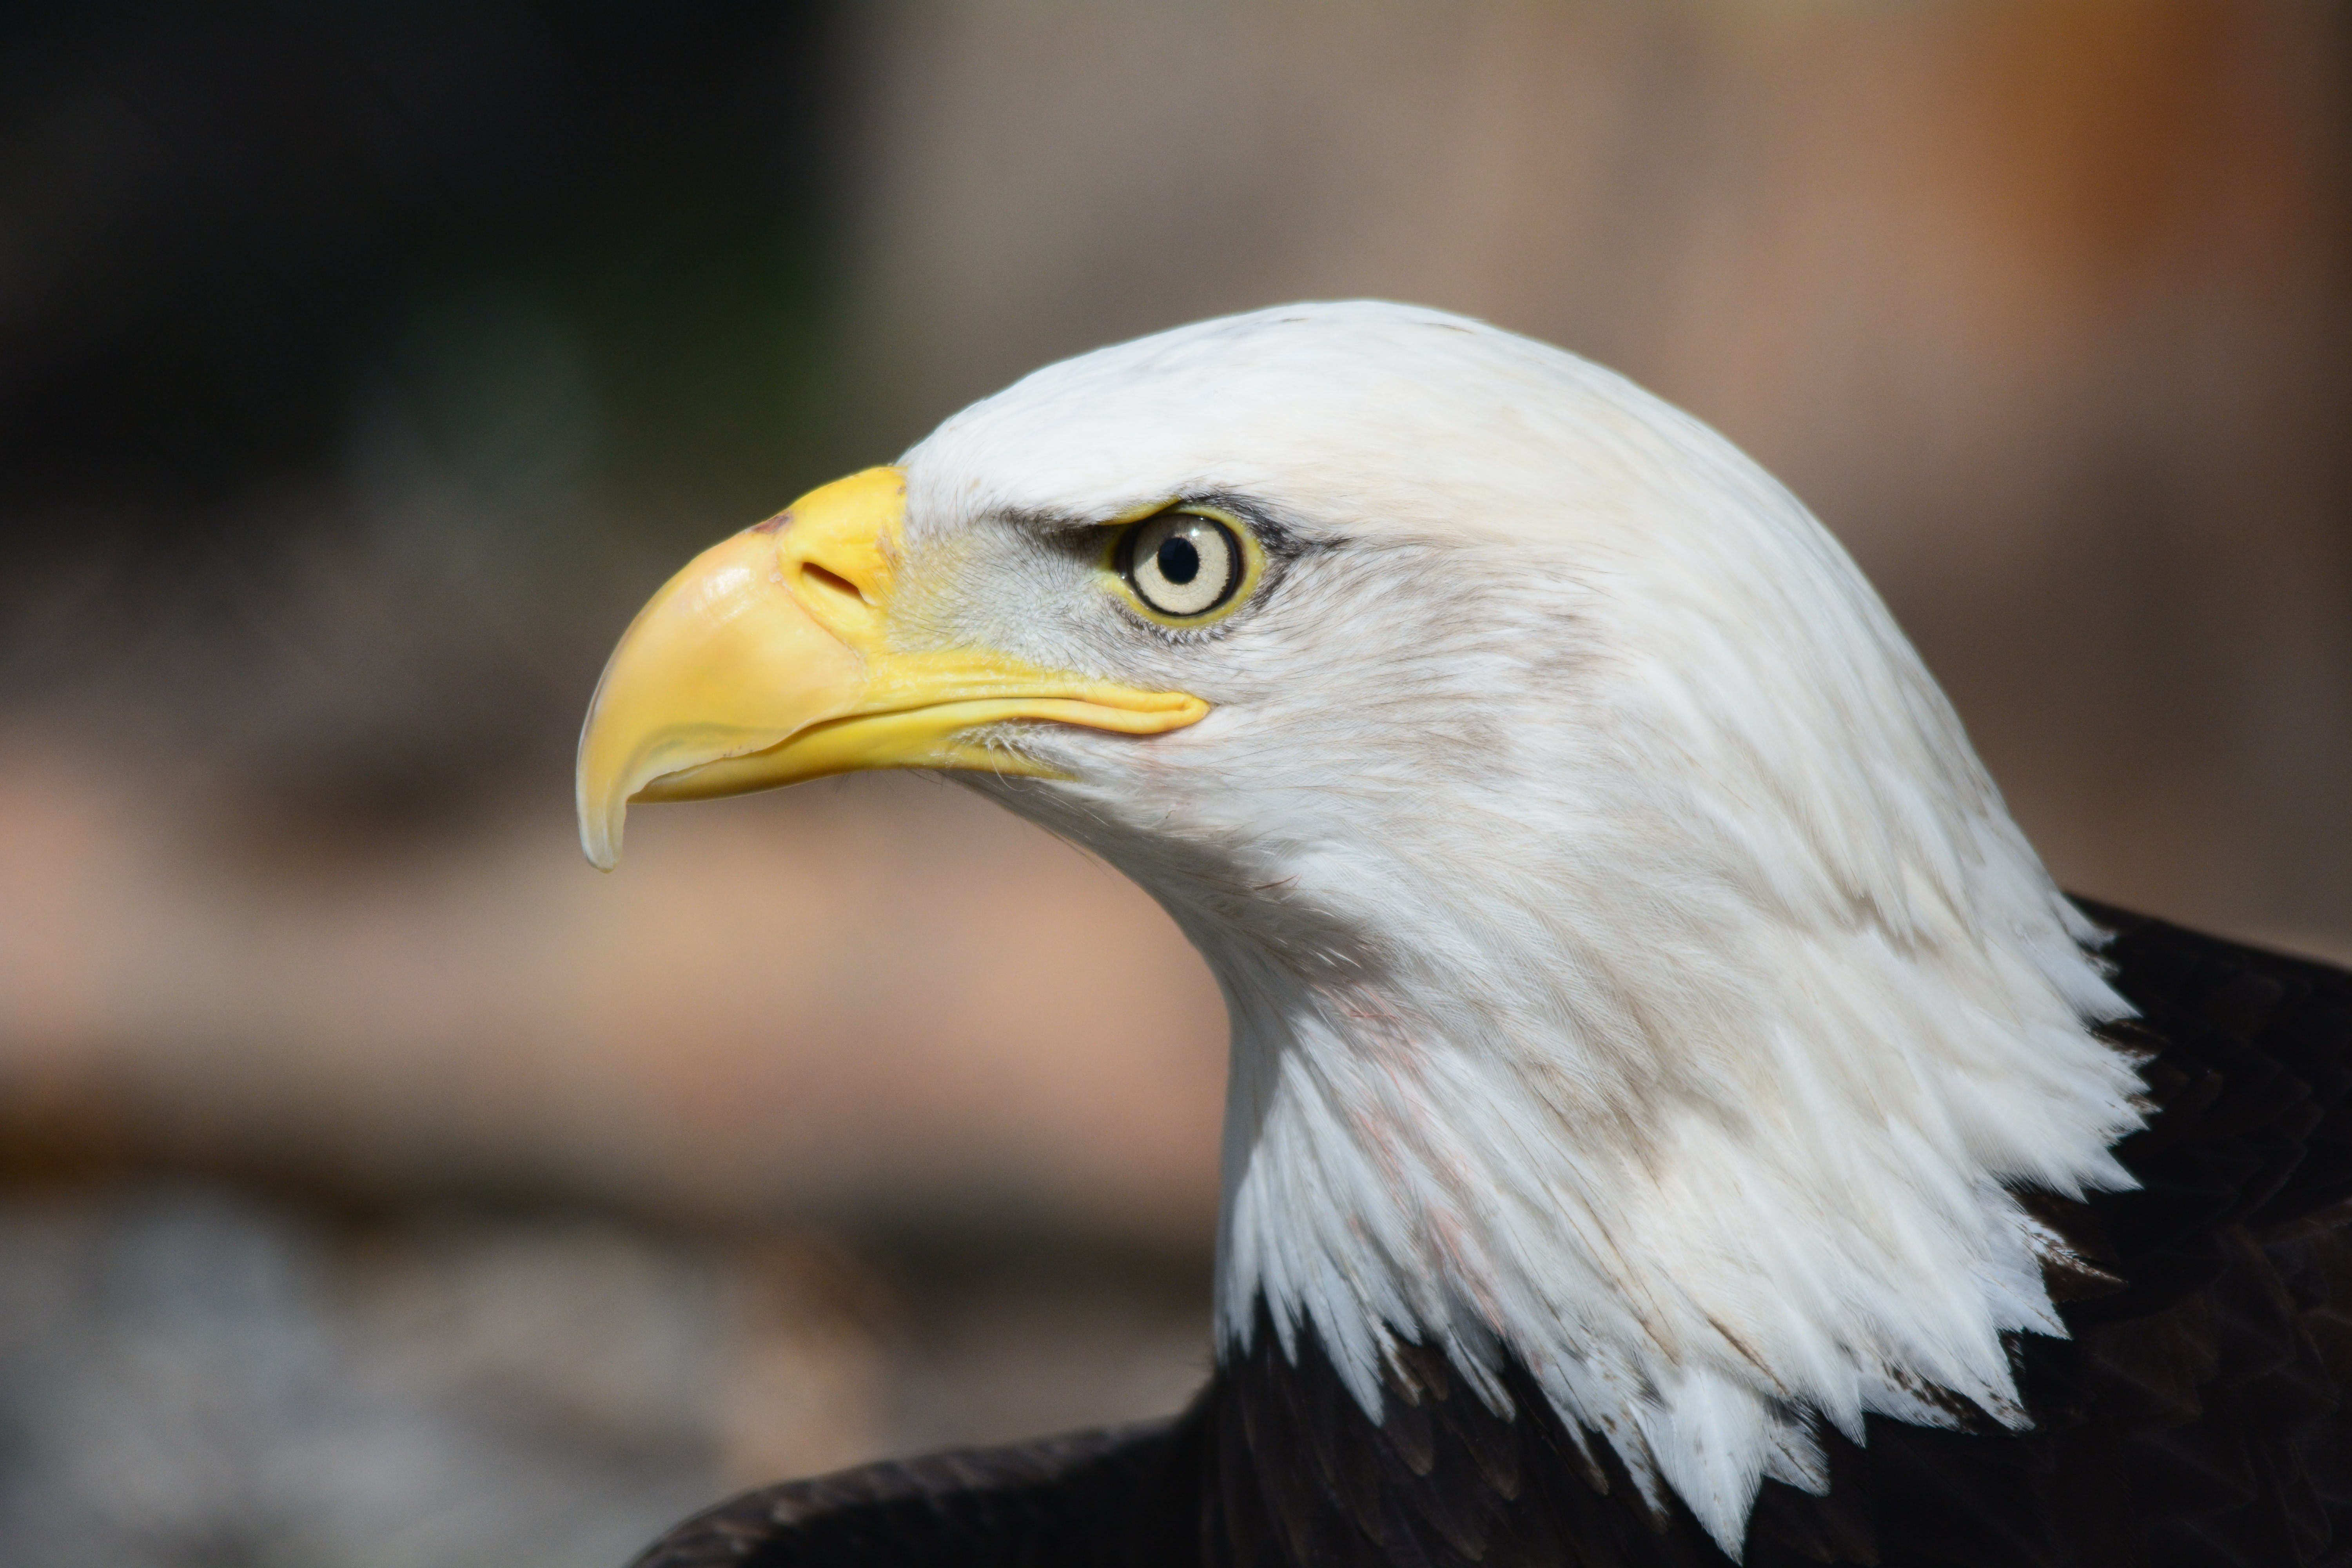 Bald Eagle in Macro Photography